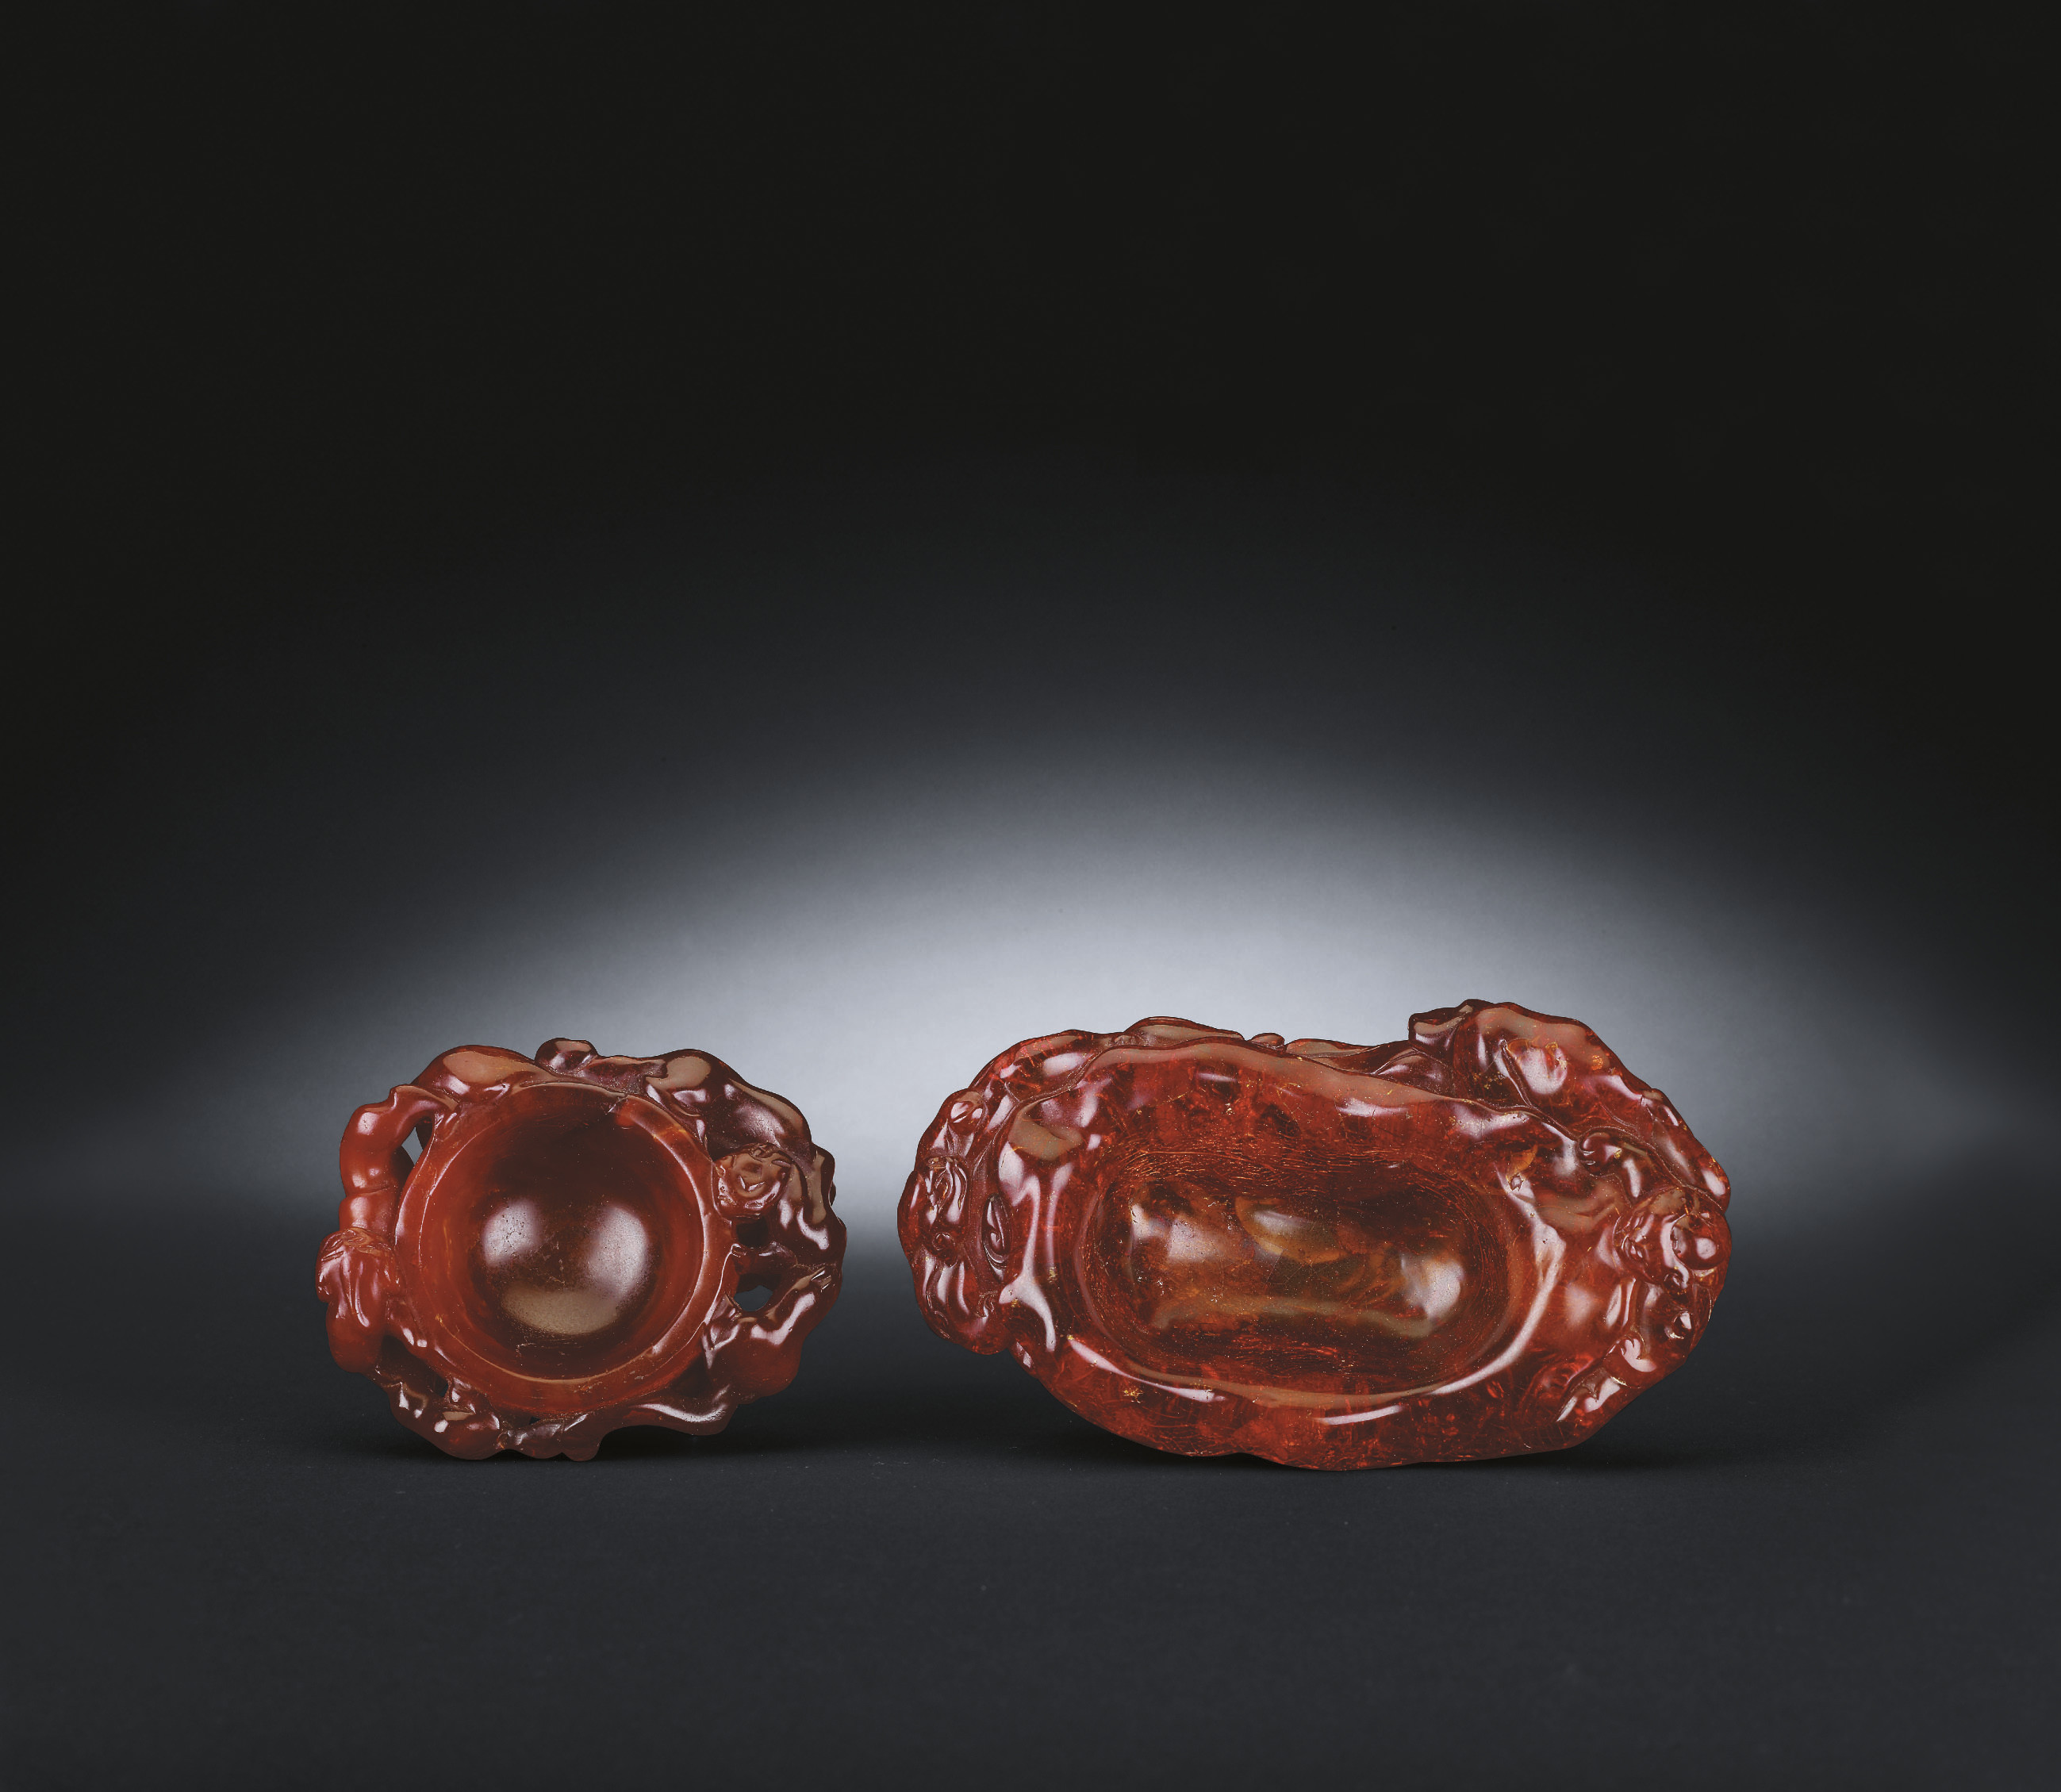 TWO UNUSUAL CARVED AMBER WATER